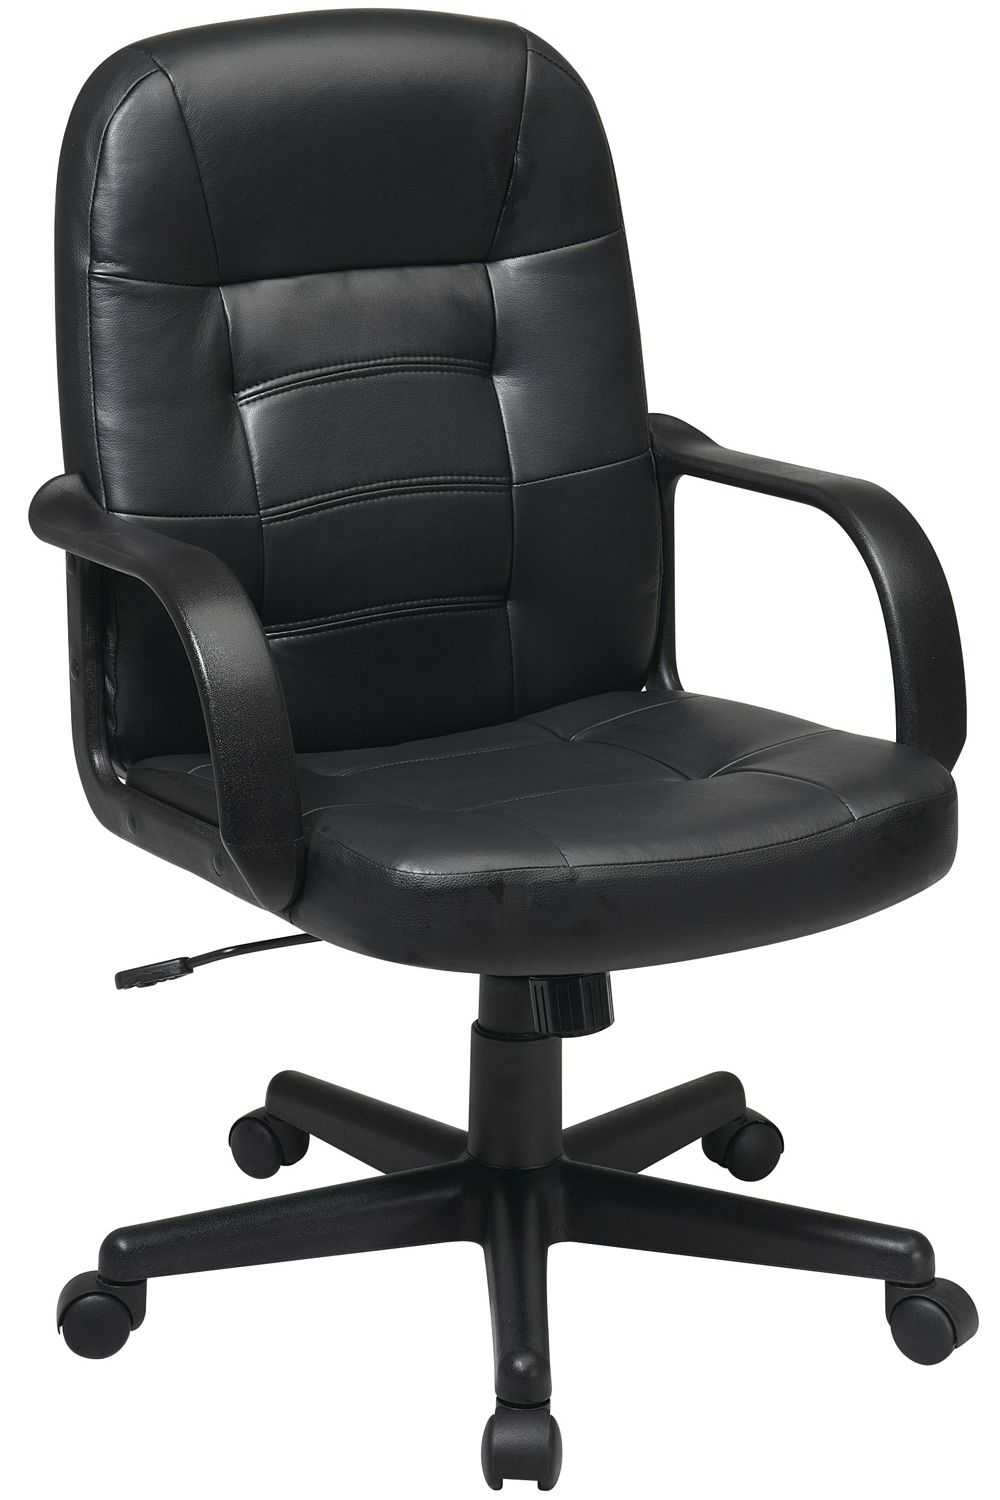 EC3393 Management Chair http://vaughanofficefurniture.com Call us for great deals!📞 905-669-0112